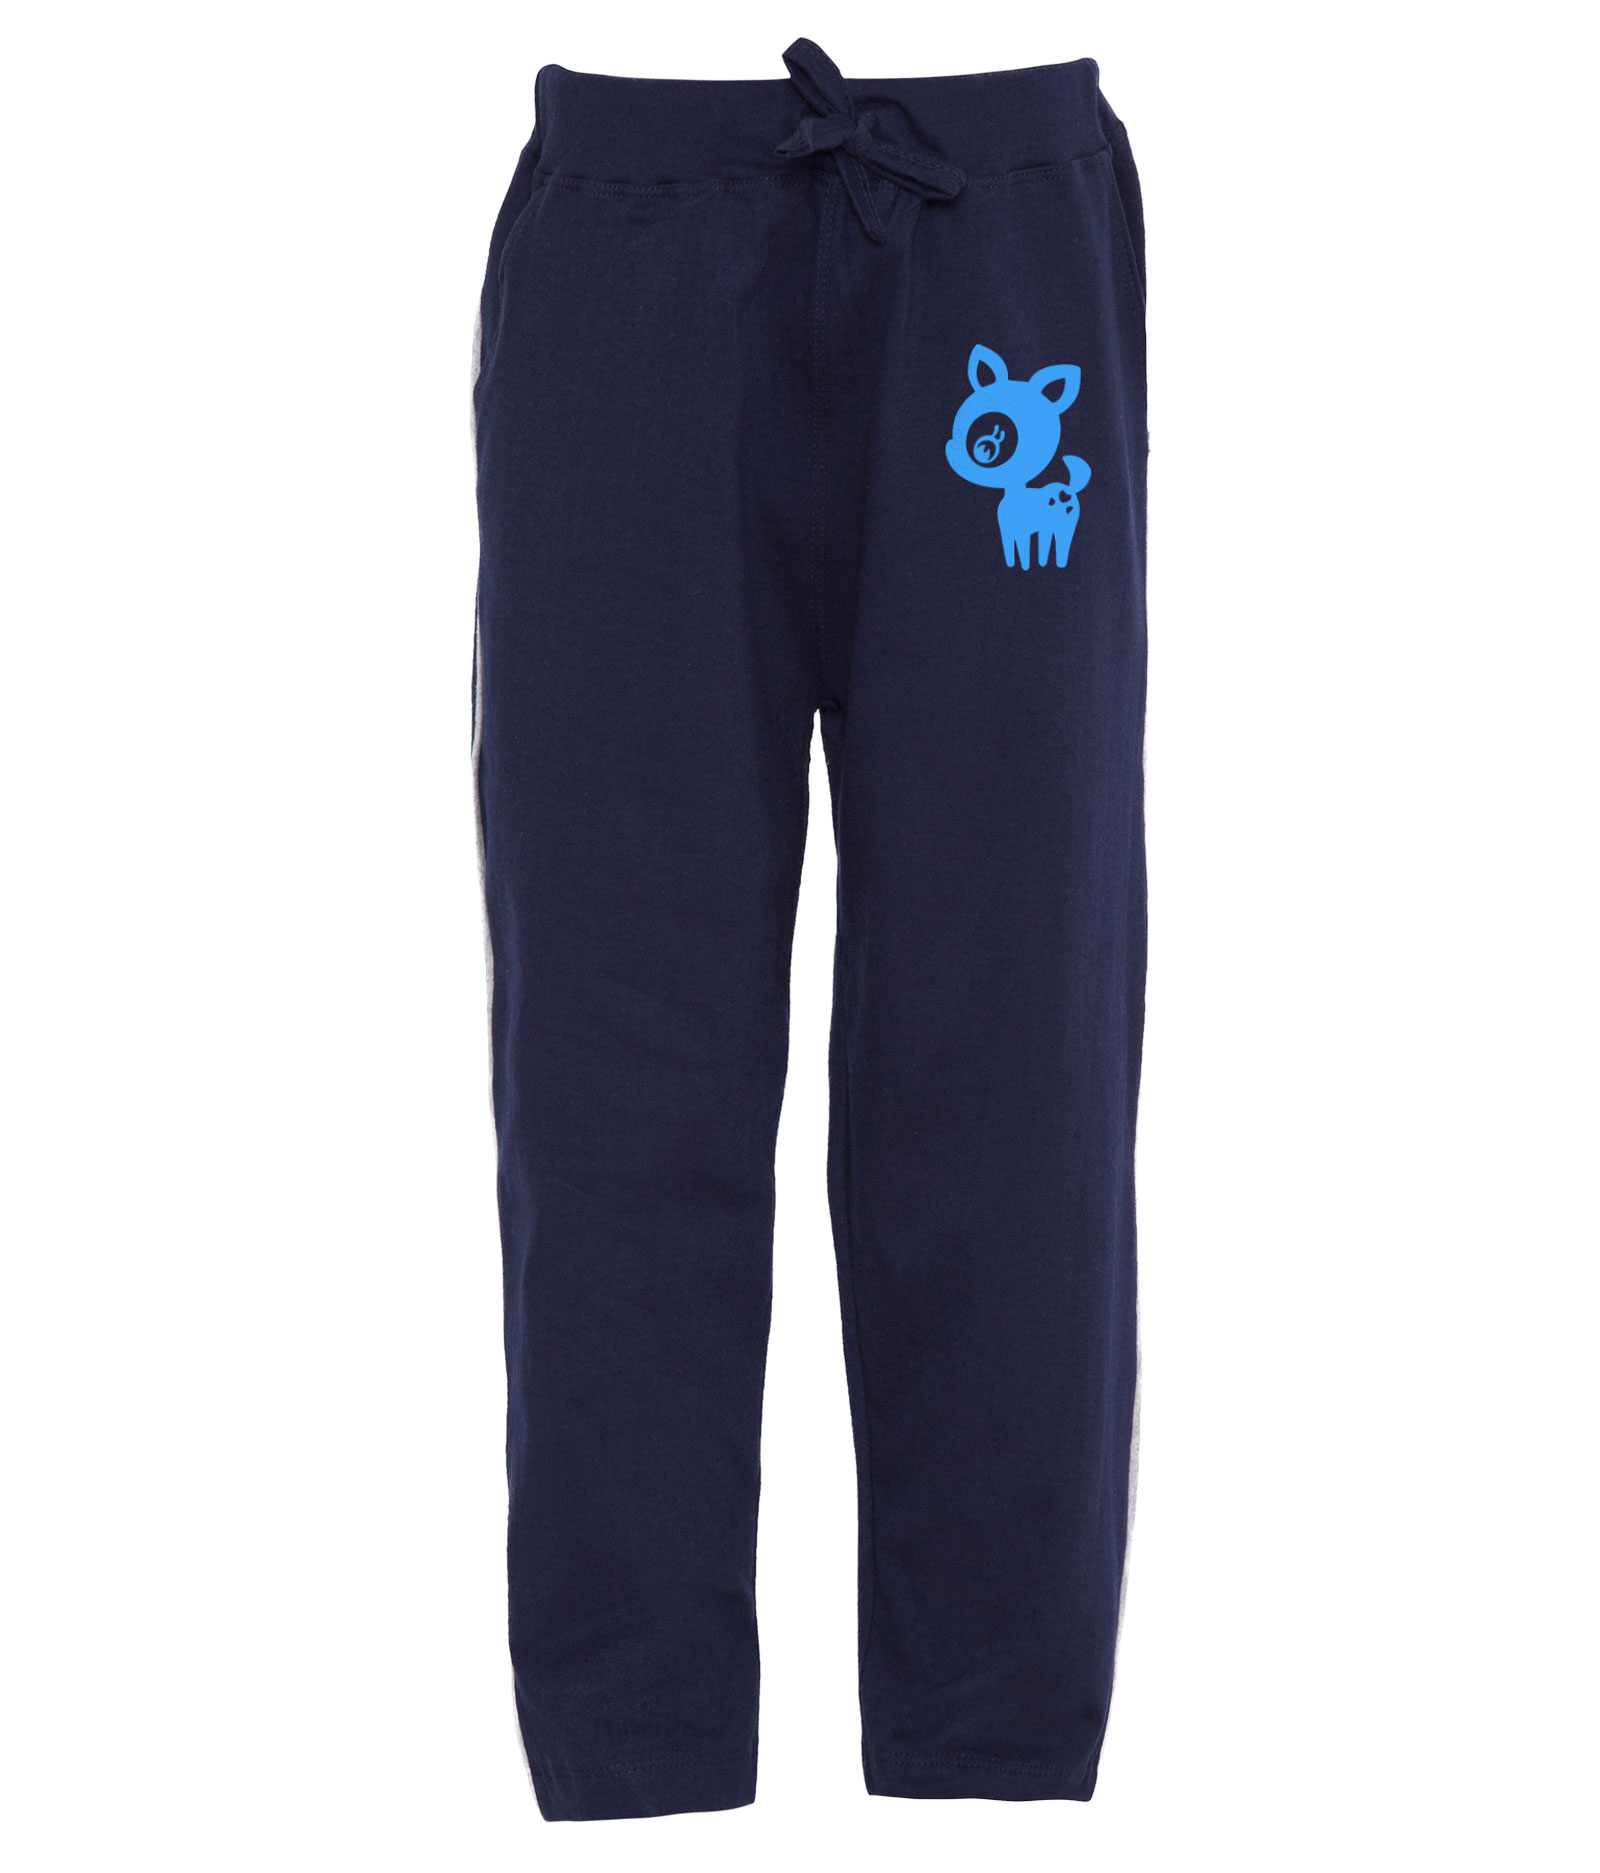 Haoser Kid's Soft and Thick Cotton Track Pant Sky Printed for Boys and Girls